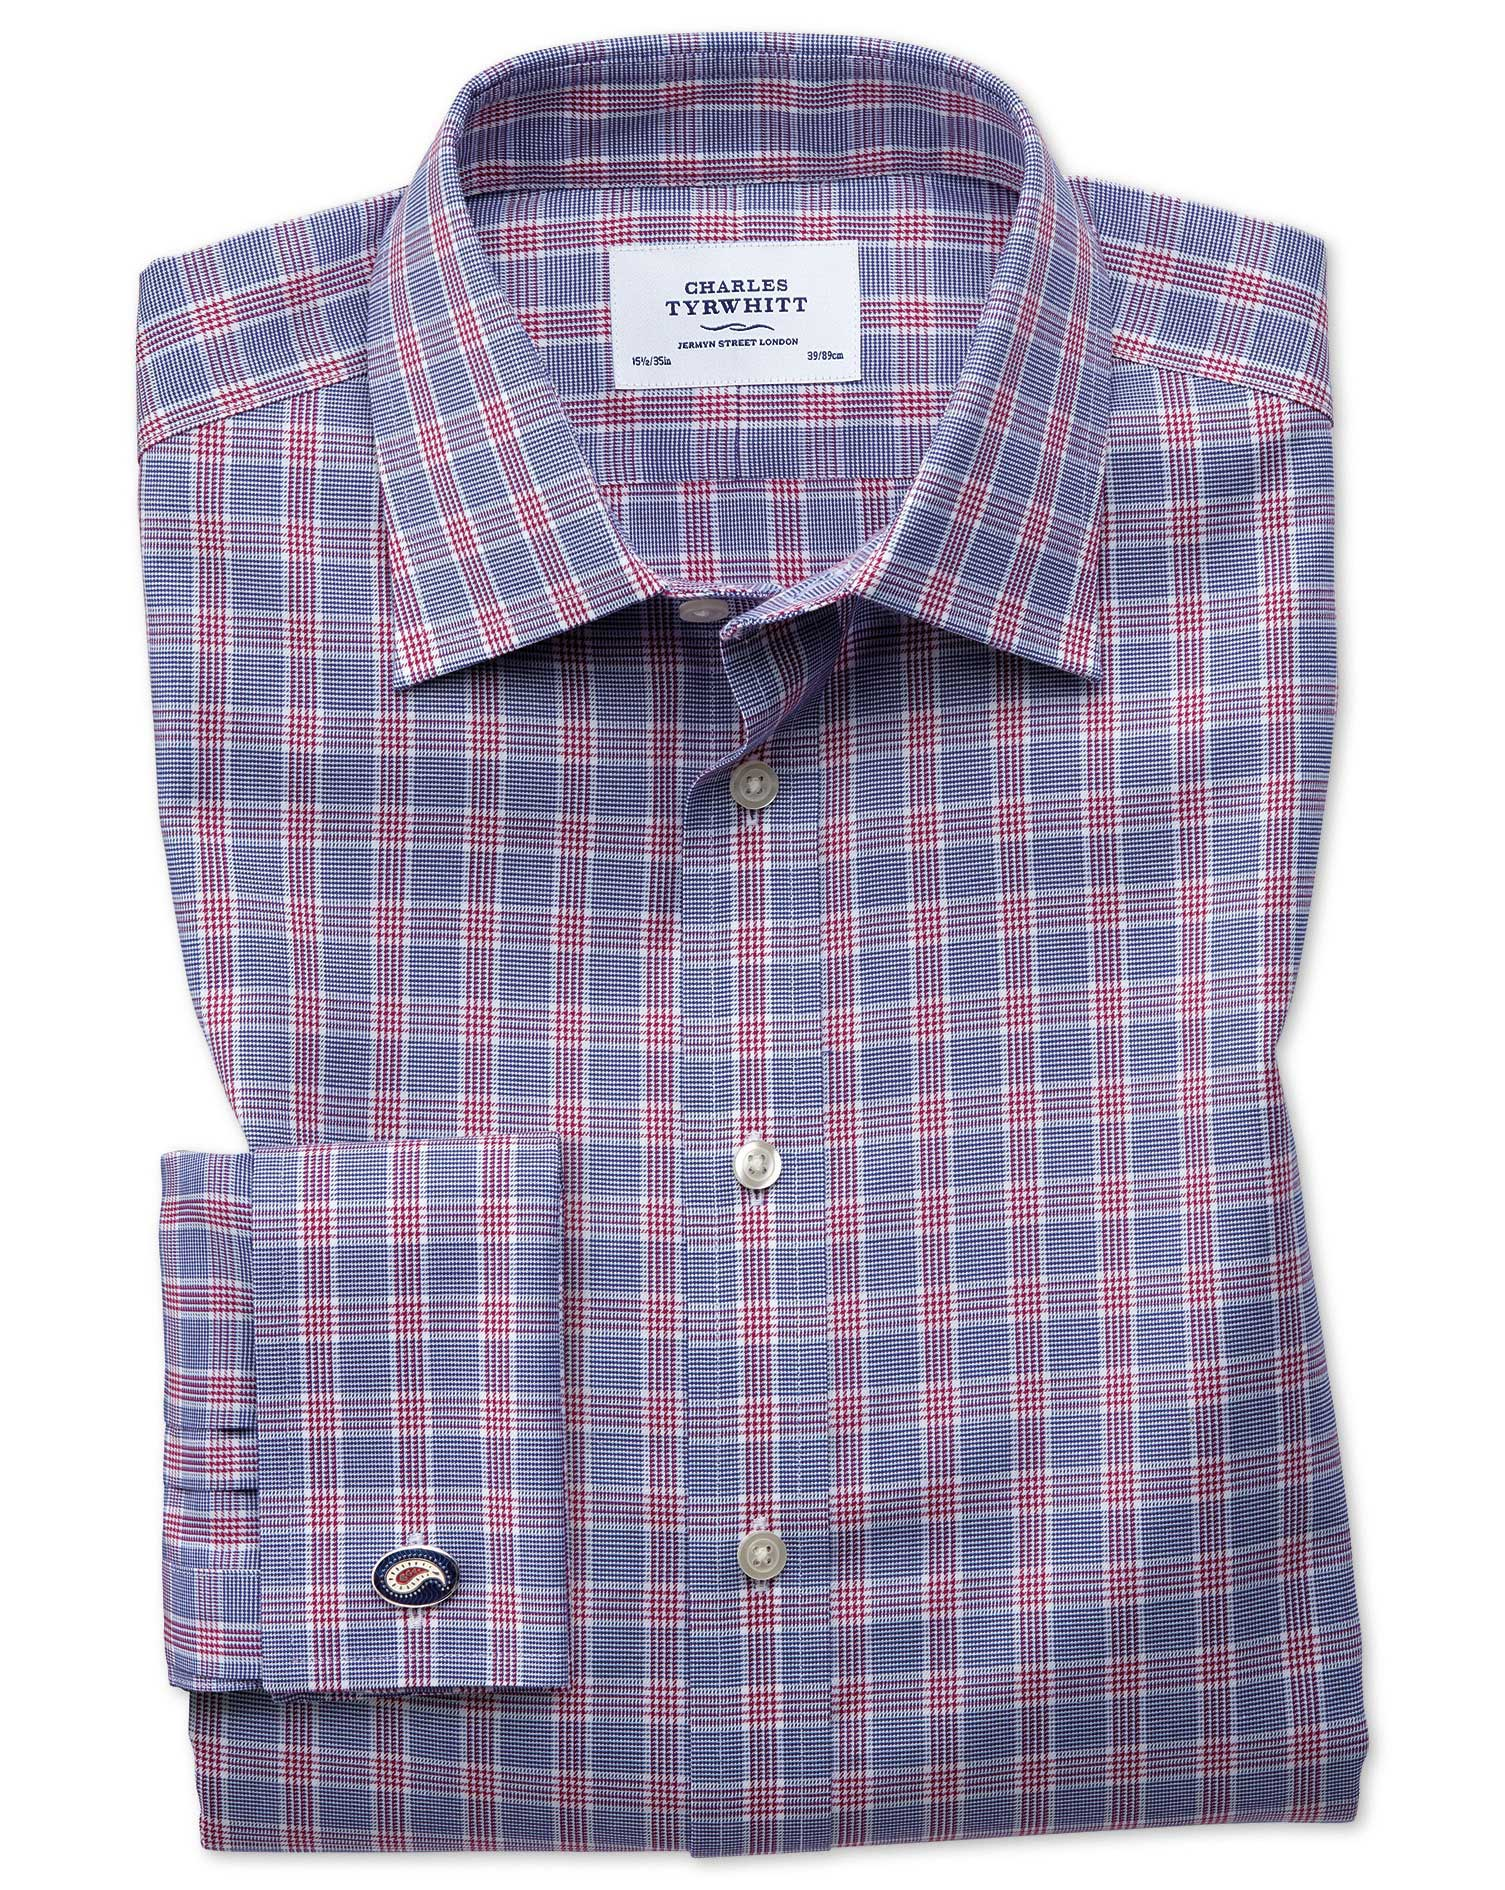 Slim Fit Non-Iron Prince Of Wales Berry and Navy Blue Cotton Formal Shirt Single Cuff Size 16.5/34 b